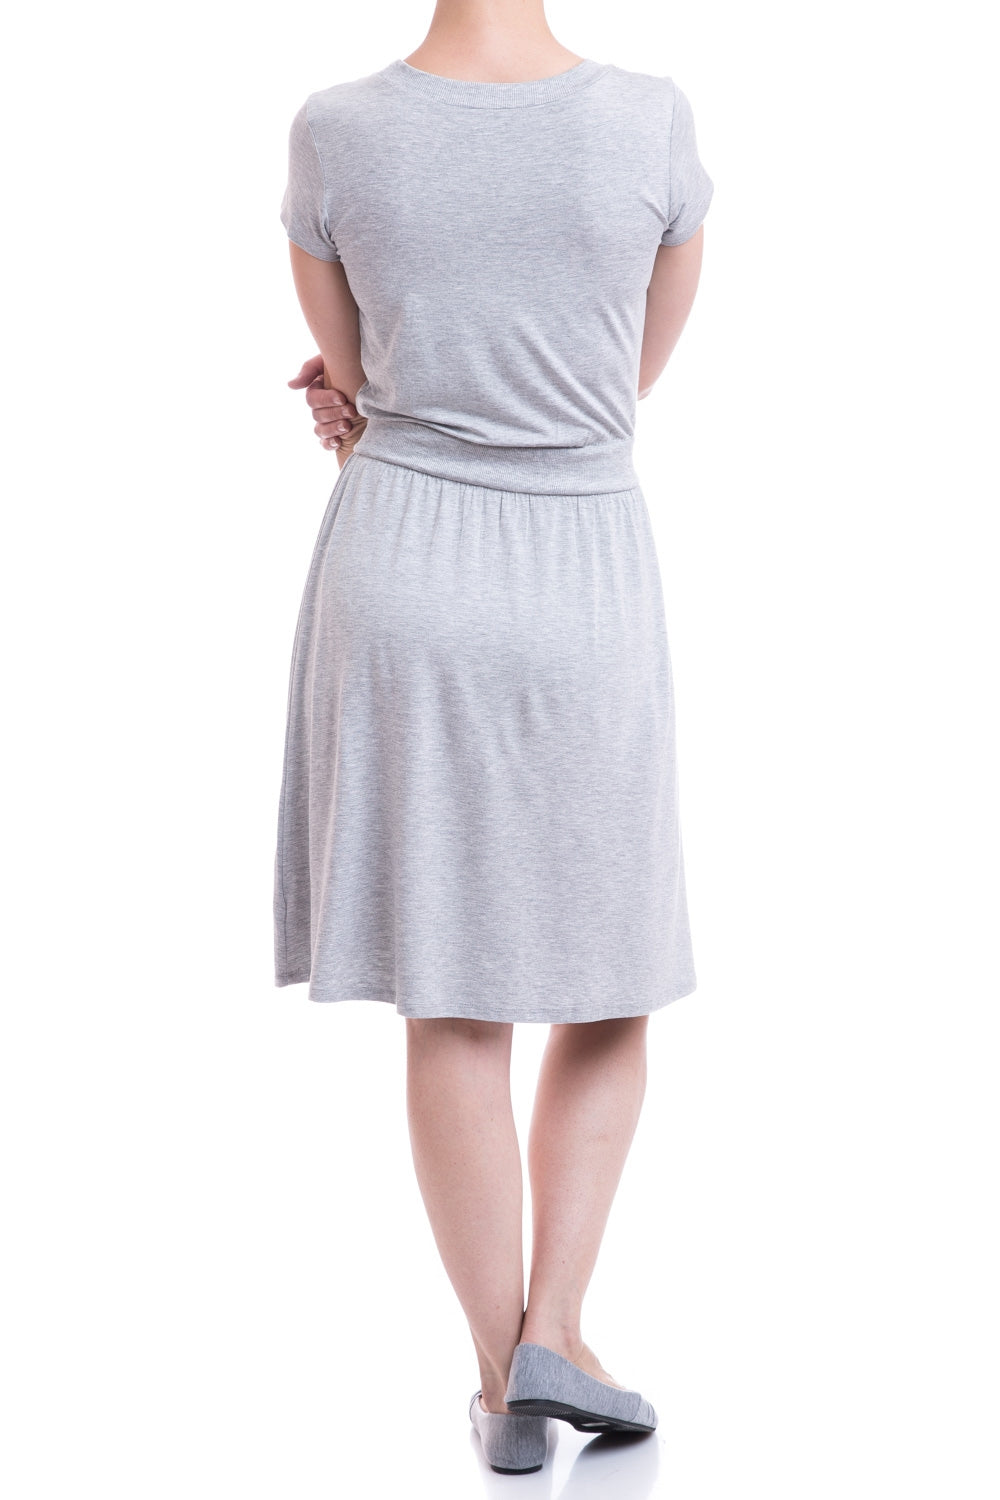 Type 2 Copacetic Dress In Heather Gray